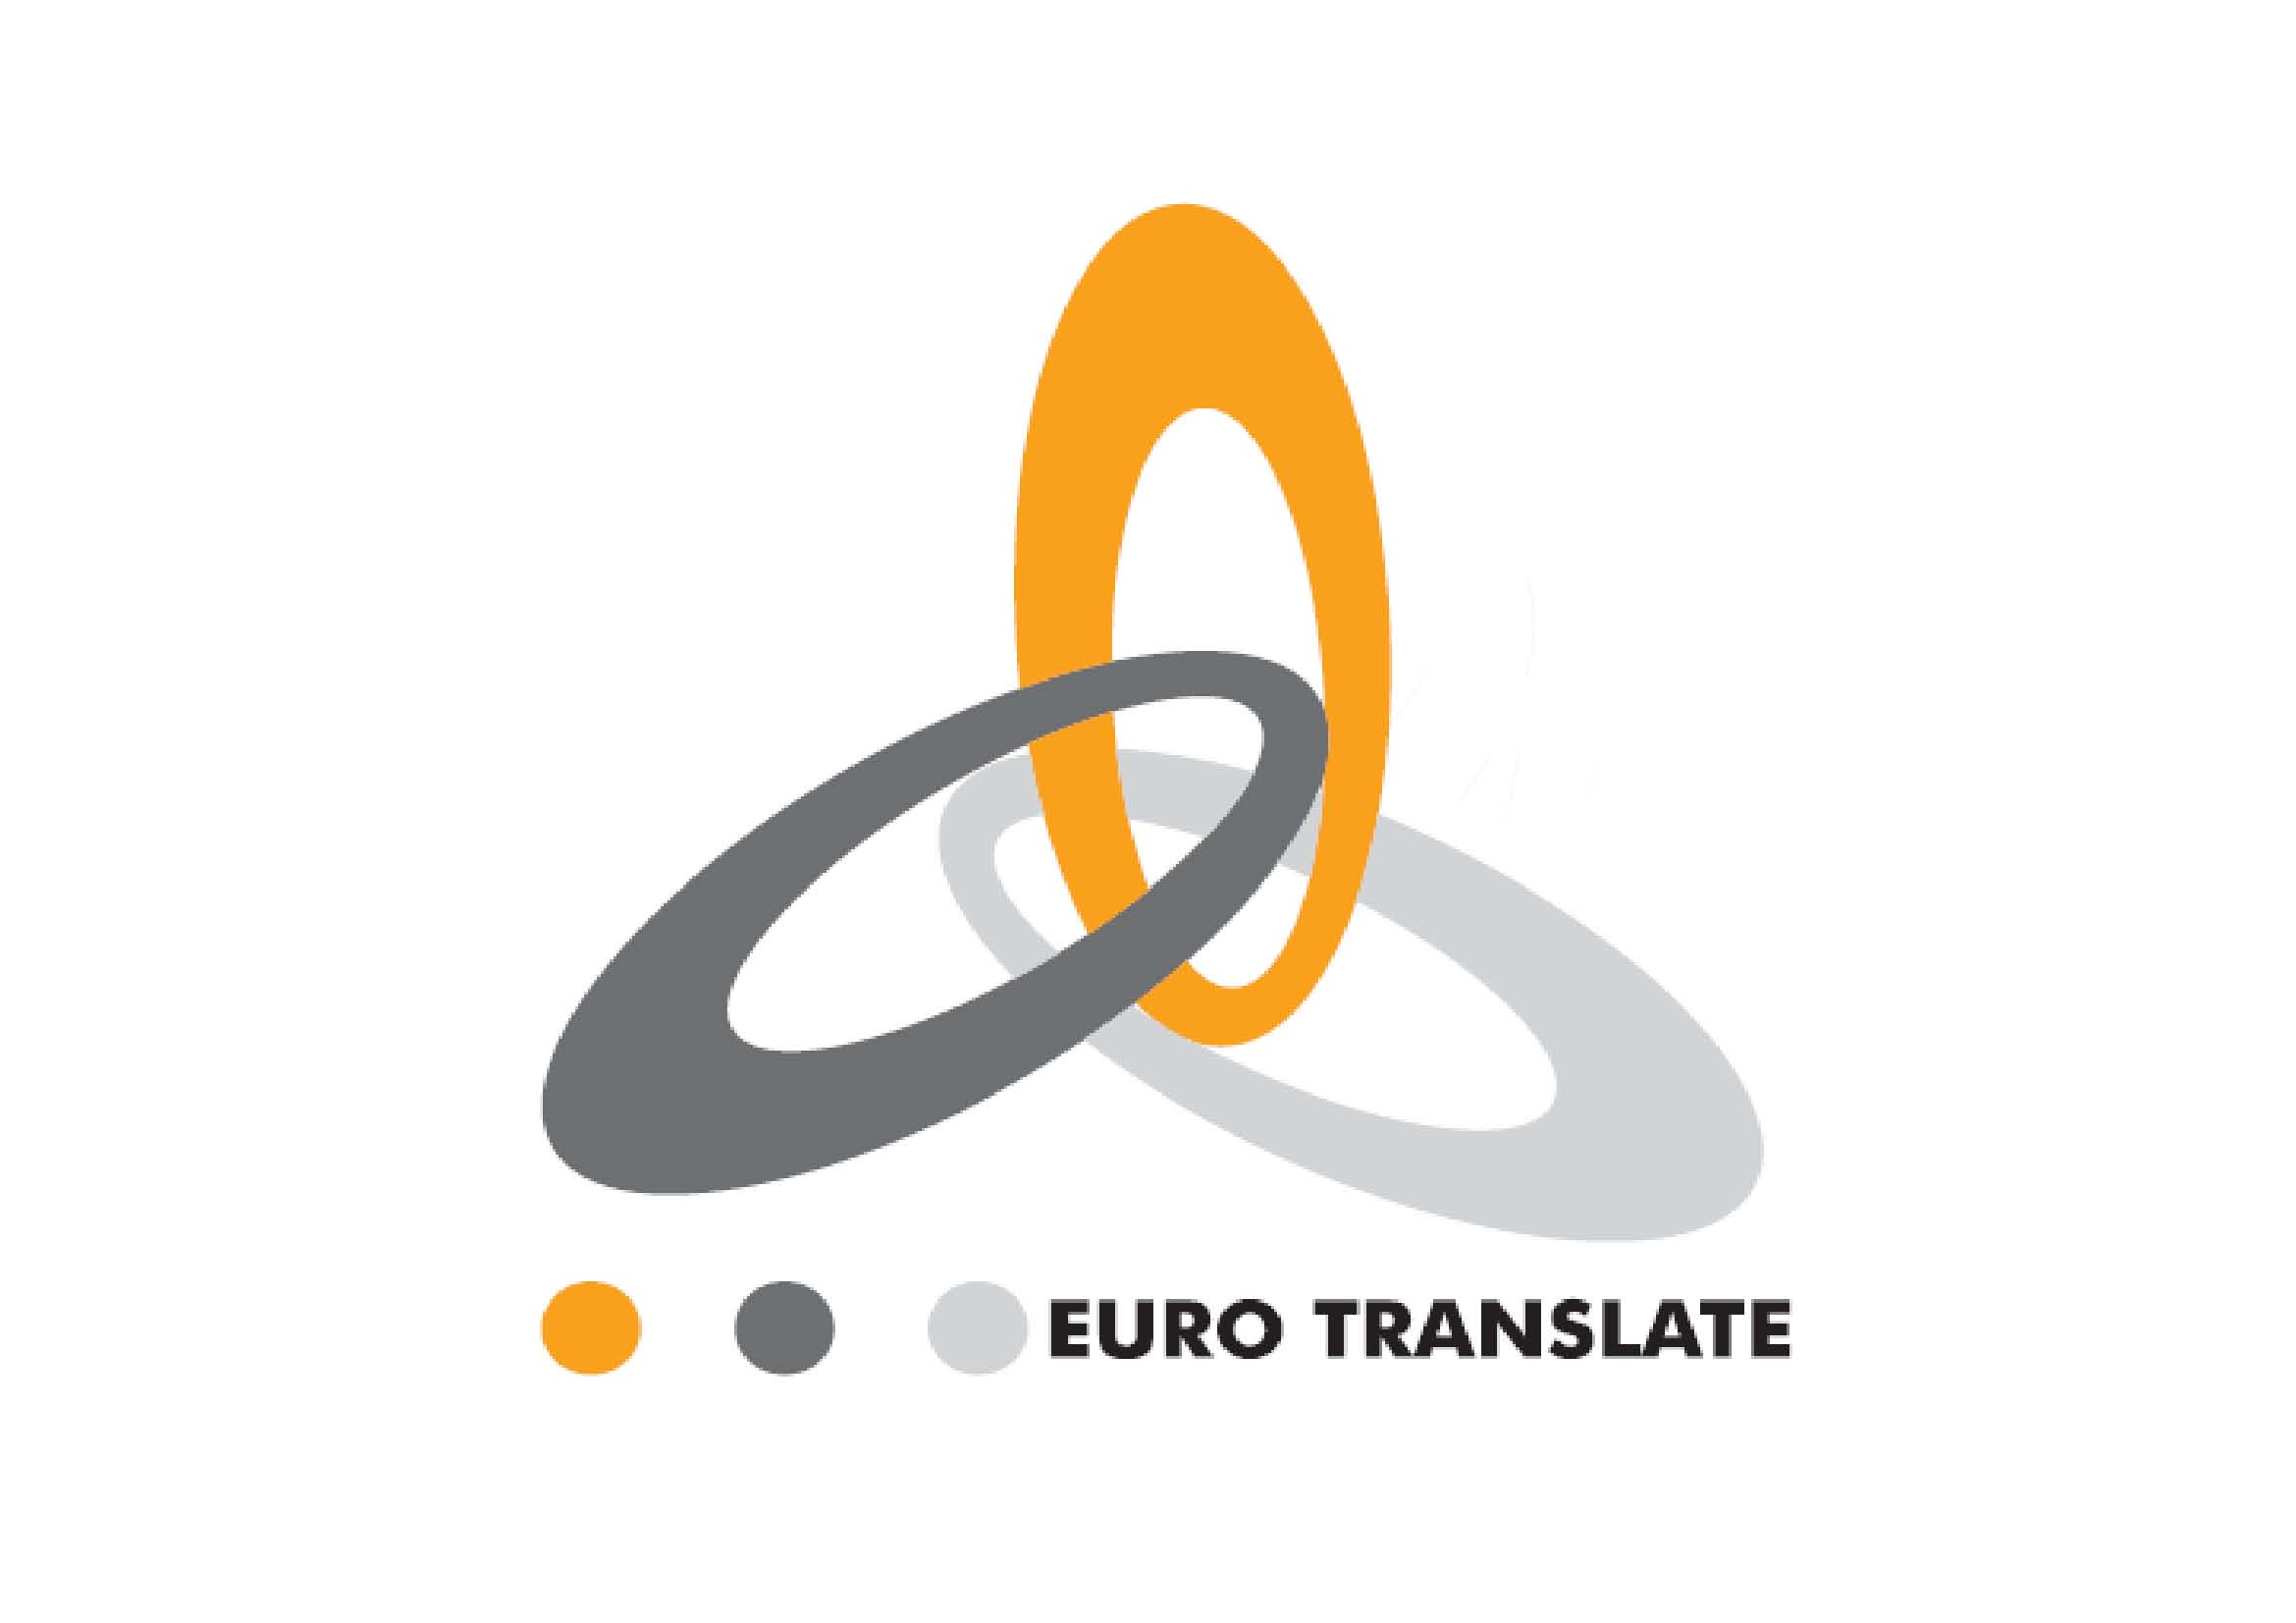 FiceDonoriEuroTranslate